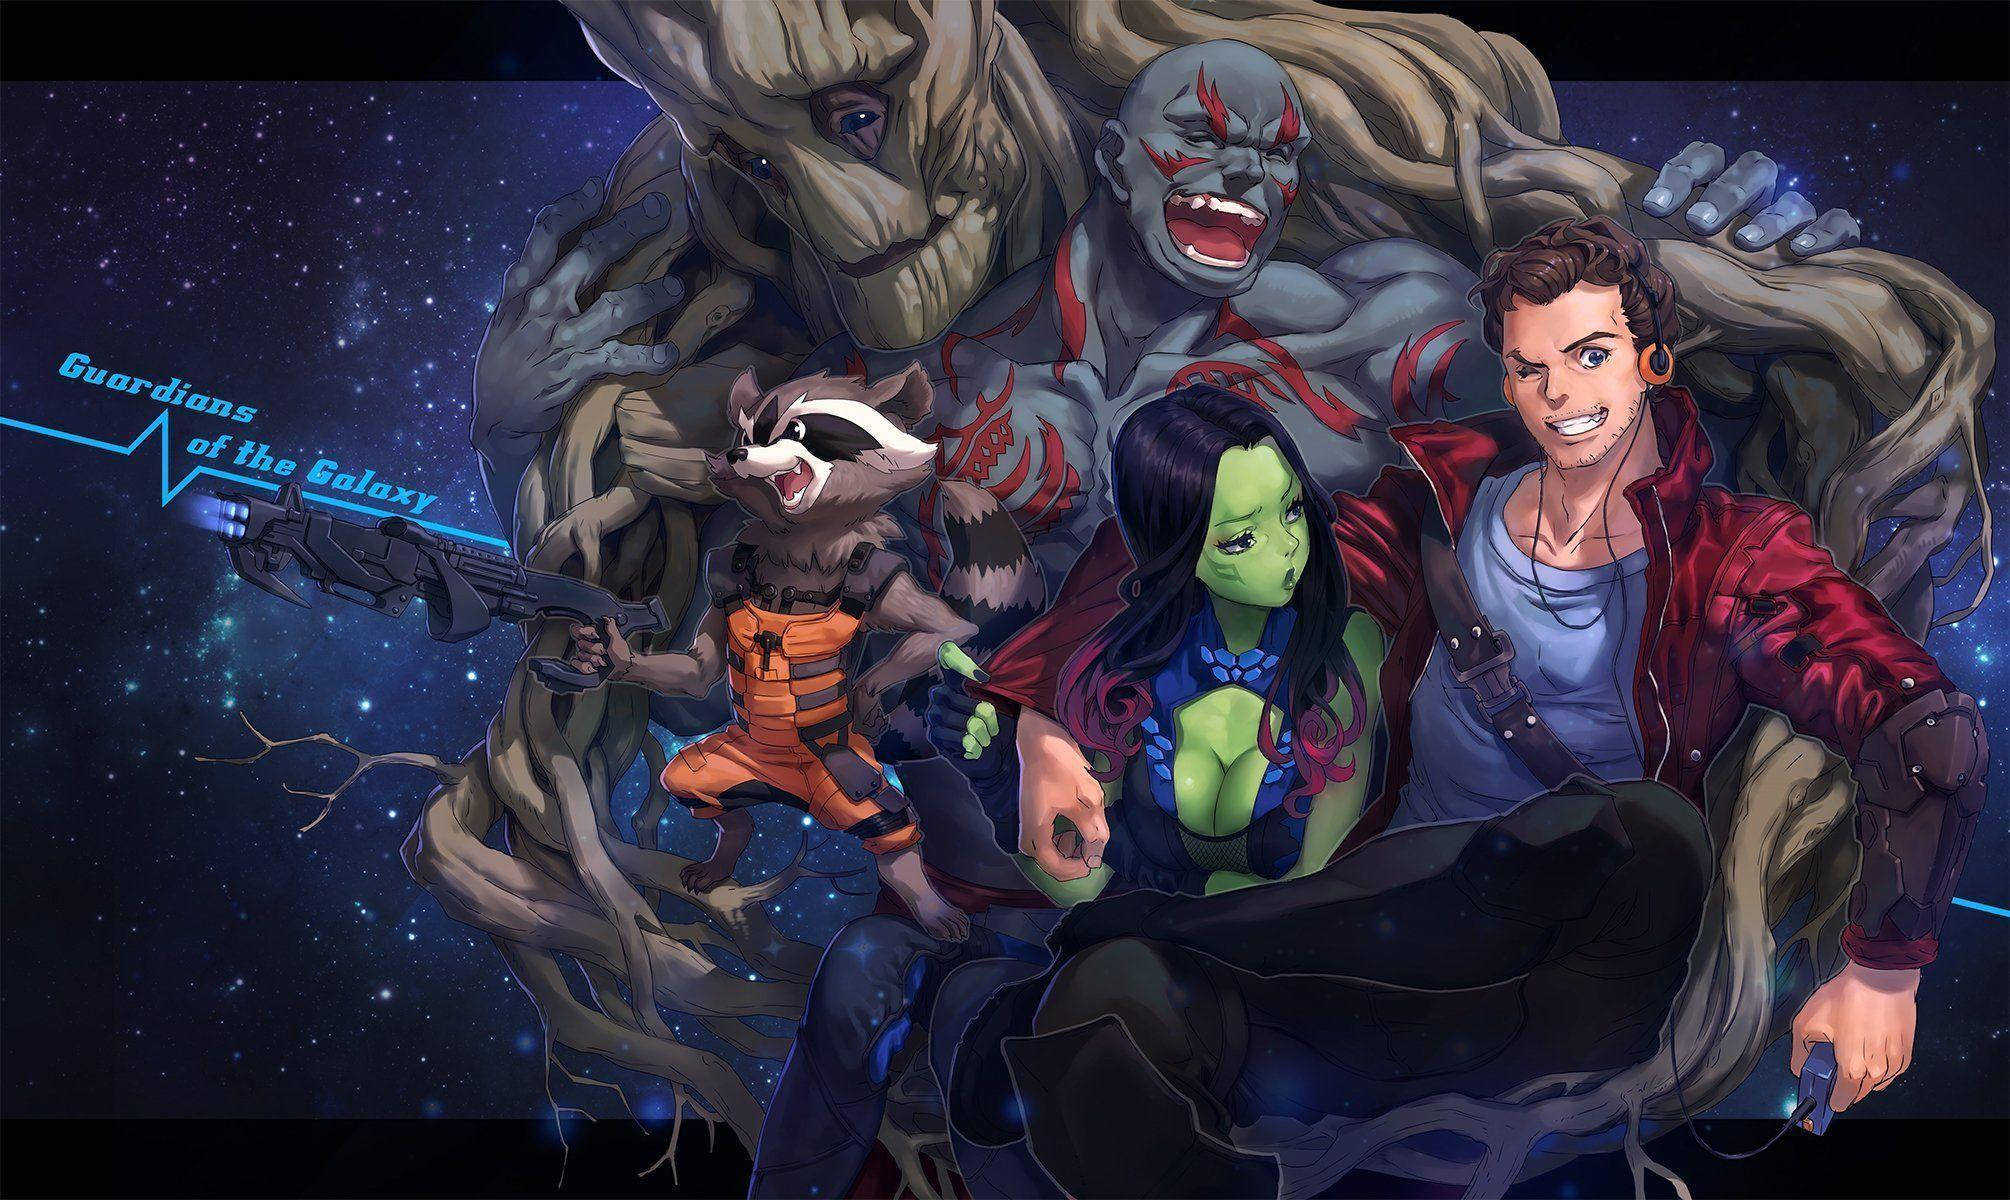 art mhk girl gamora man drax the destroyer groot peter quill